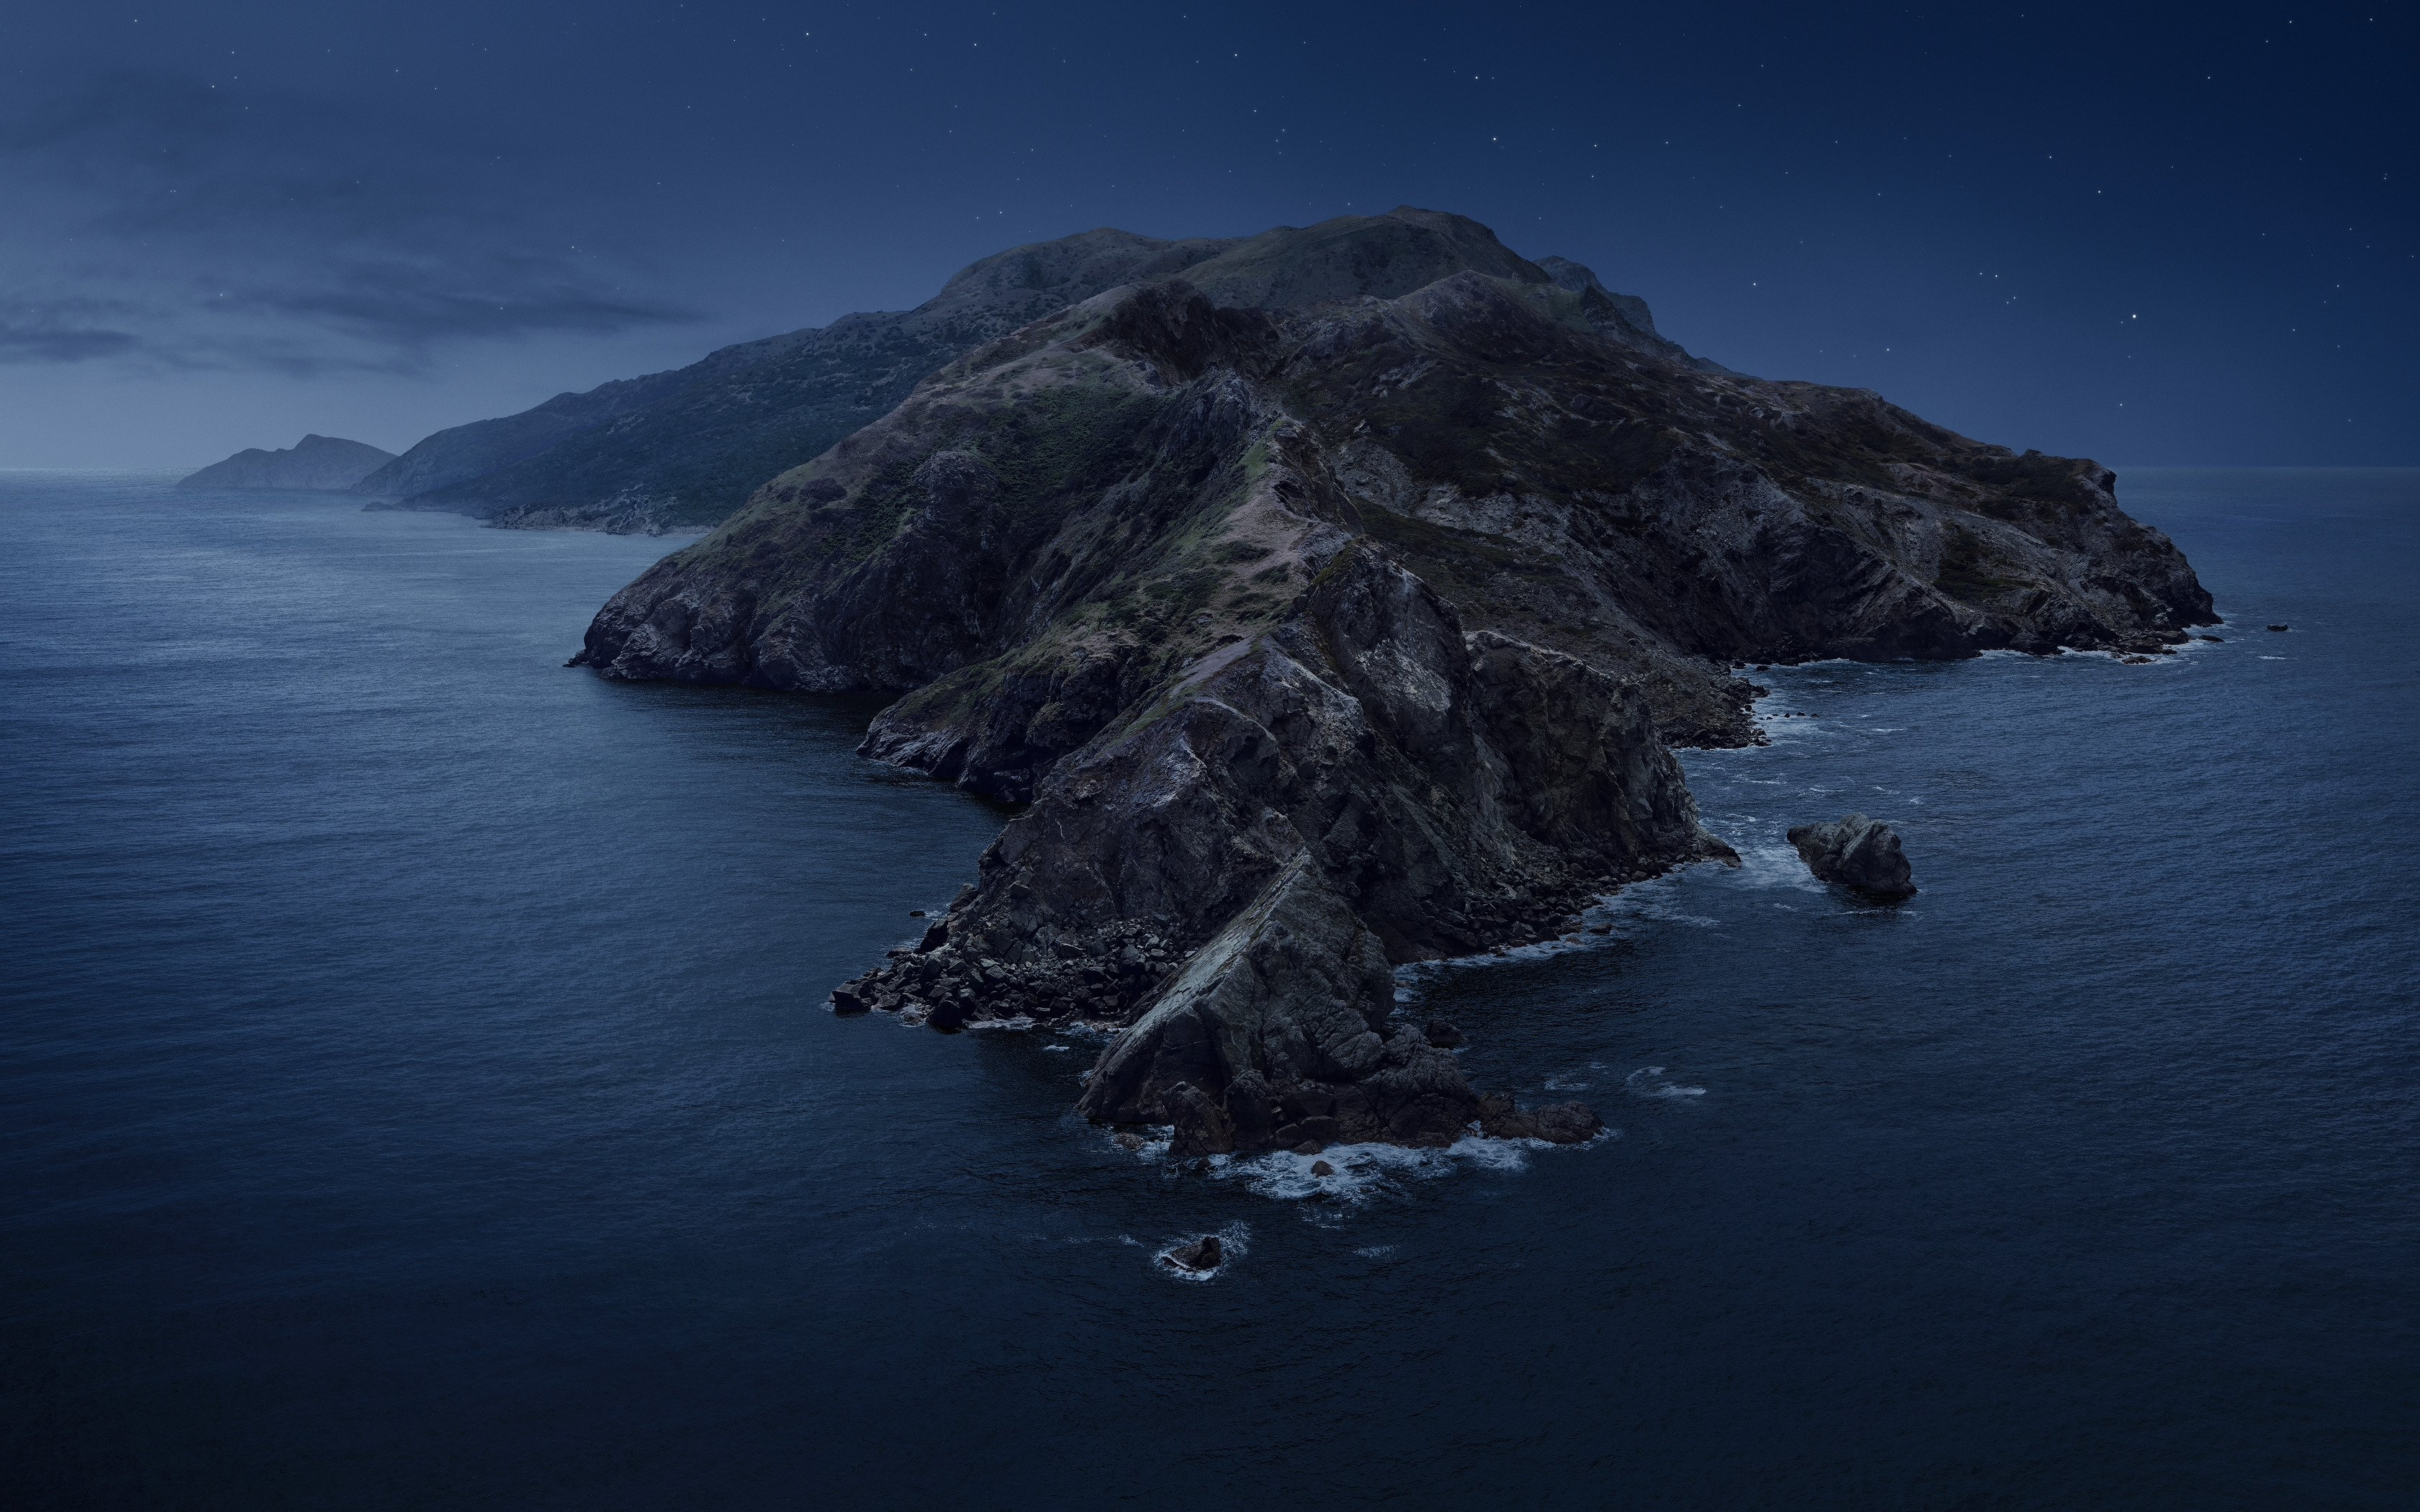 MacOS Catalina Wallpaper Apple 4764 Wallpapers and Stock 3360x2100